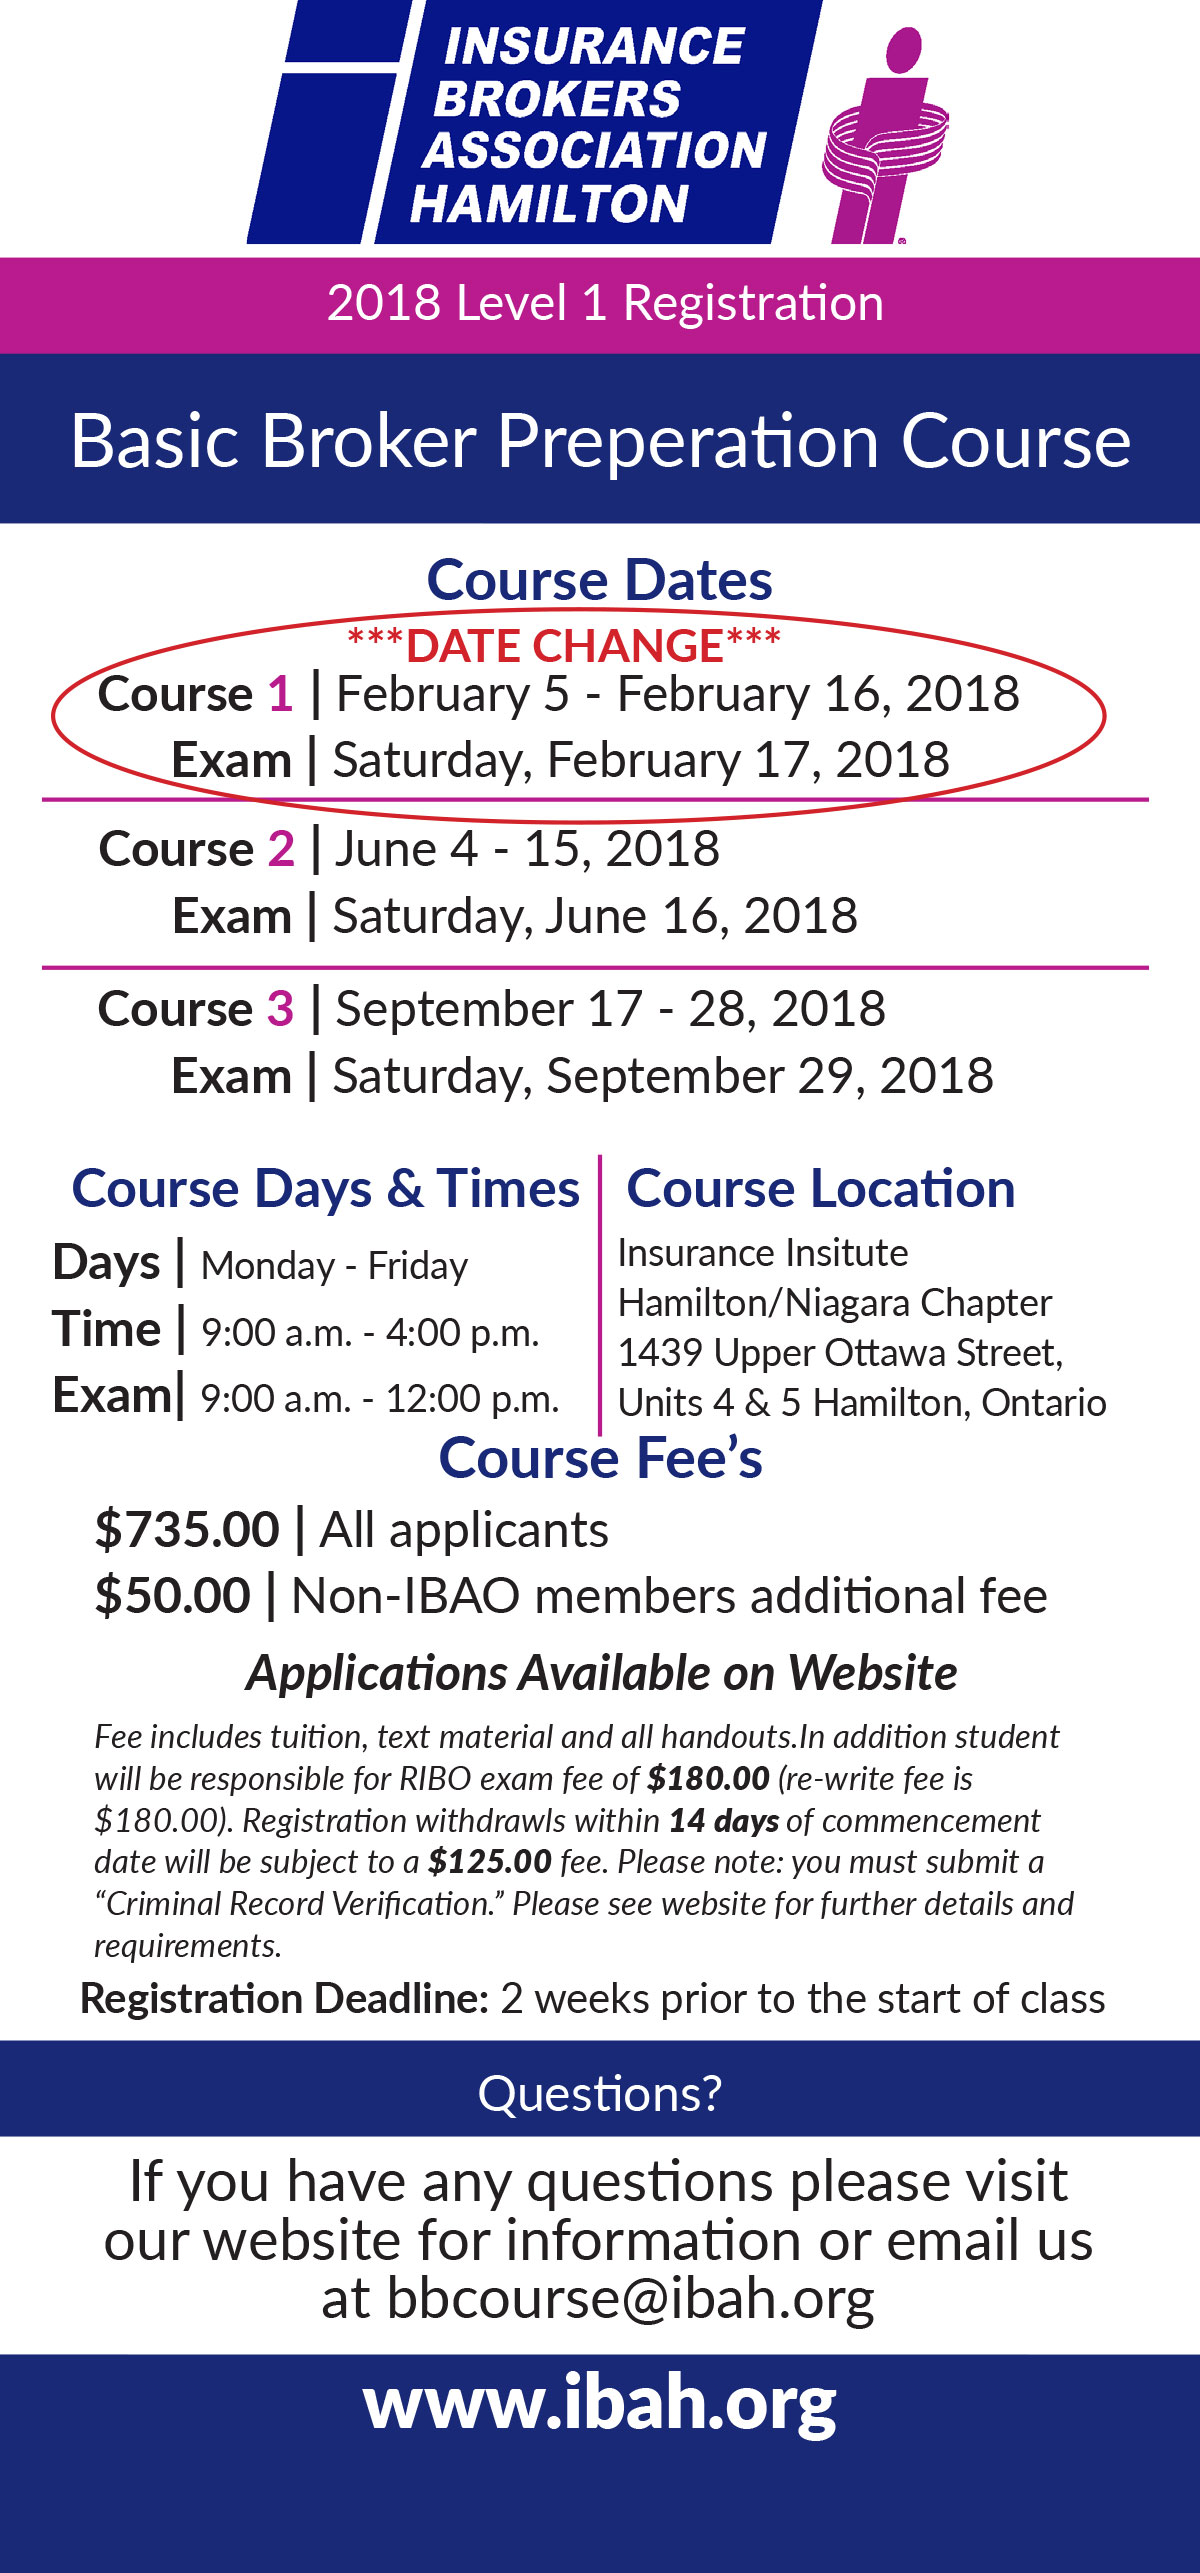 2018 RIBO Level 1 Licensing Course, Insurance Brokers Association of Hamilton